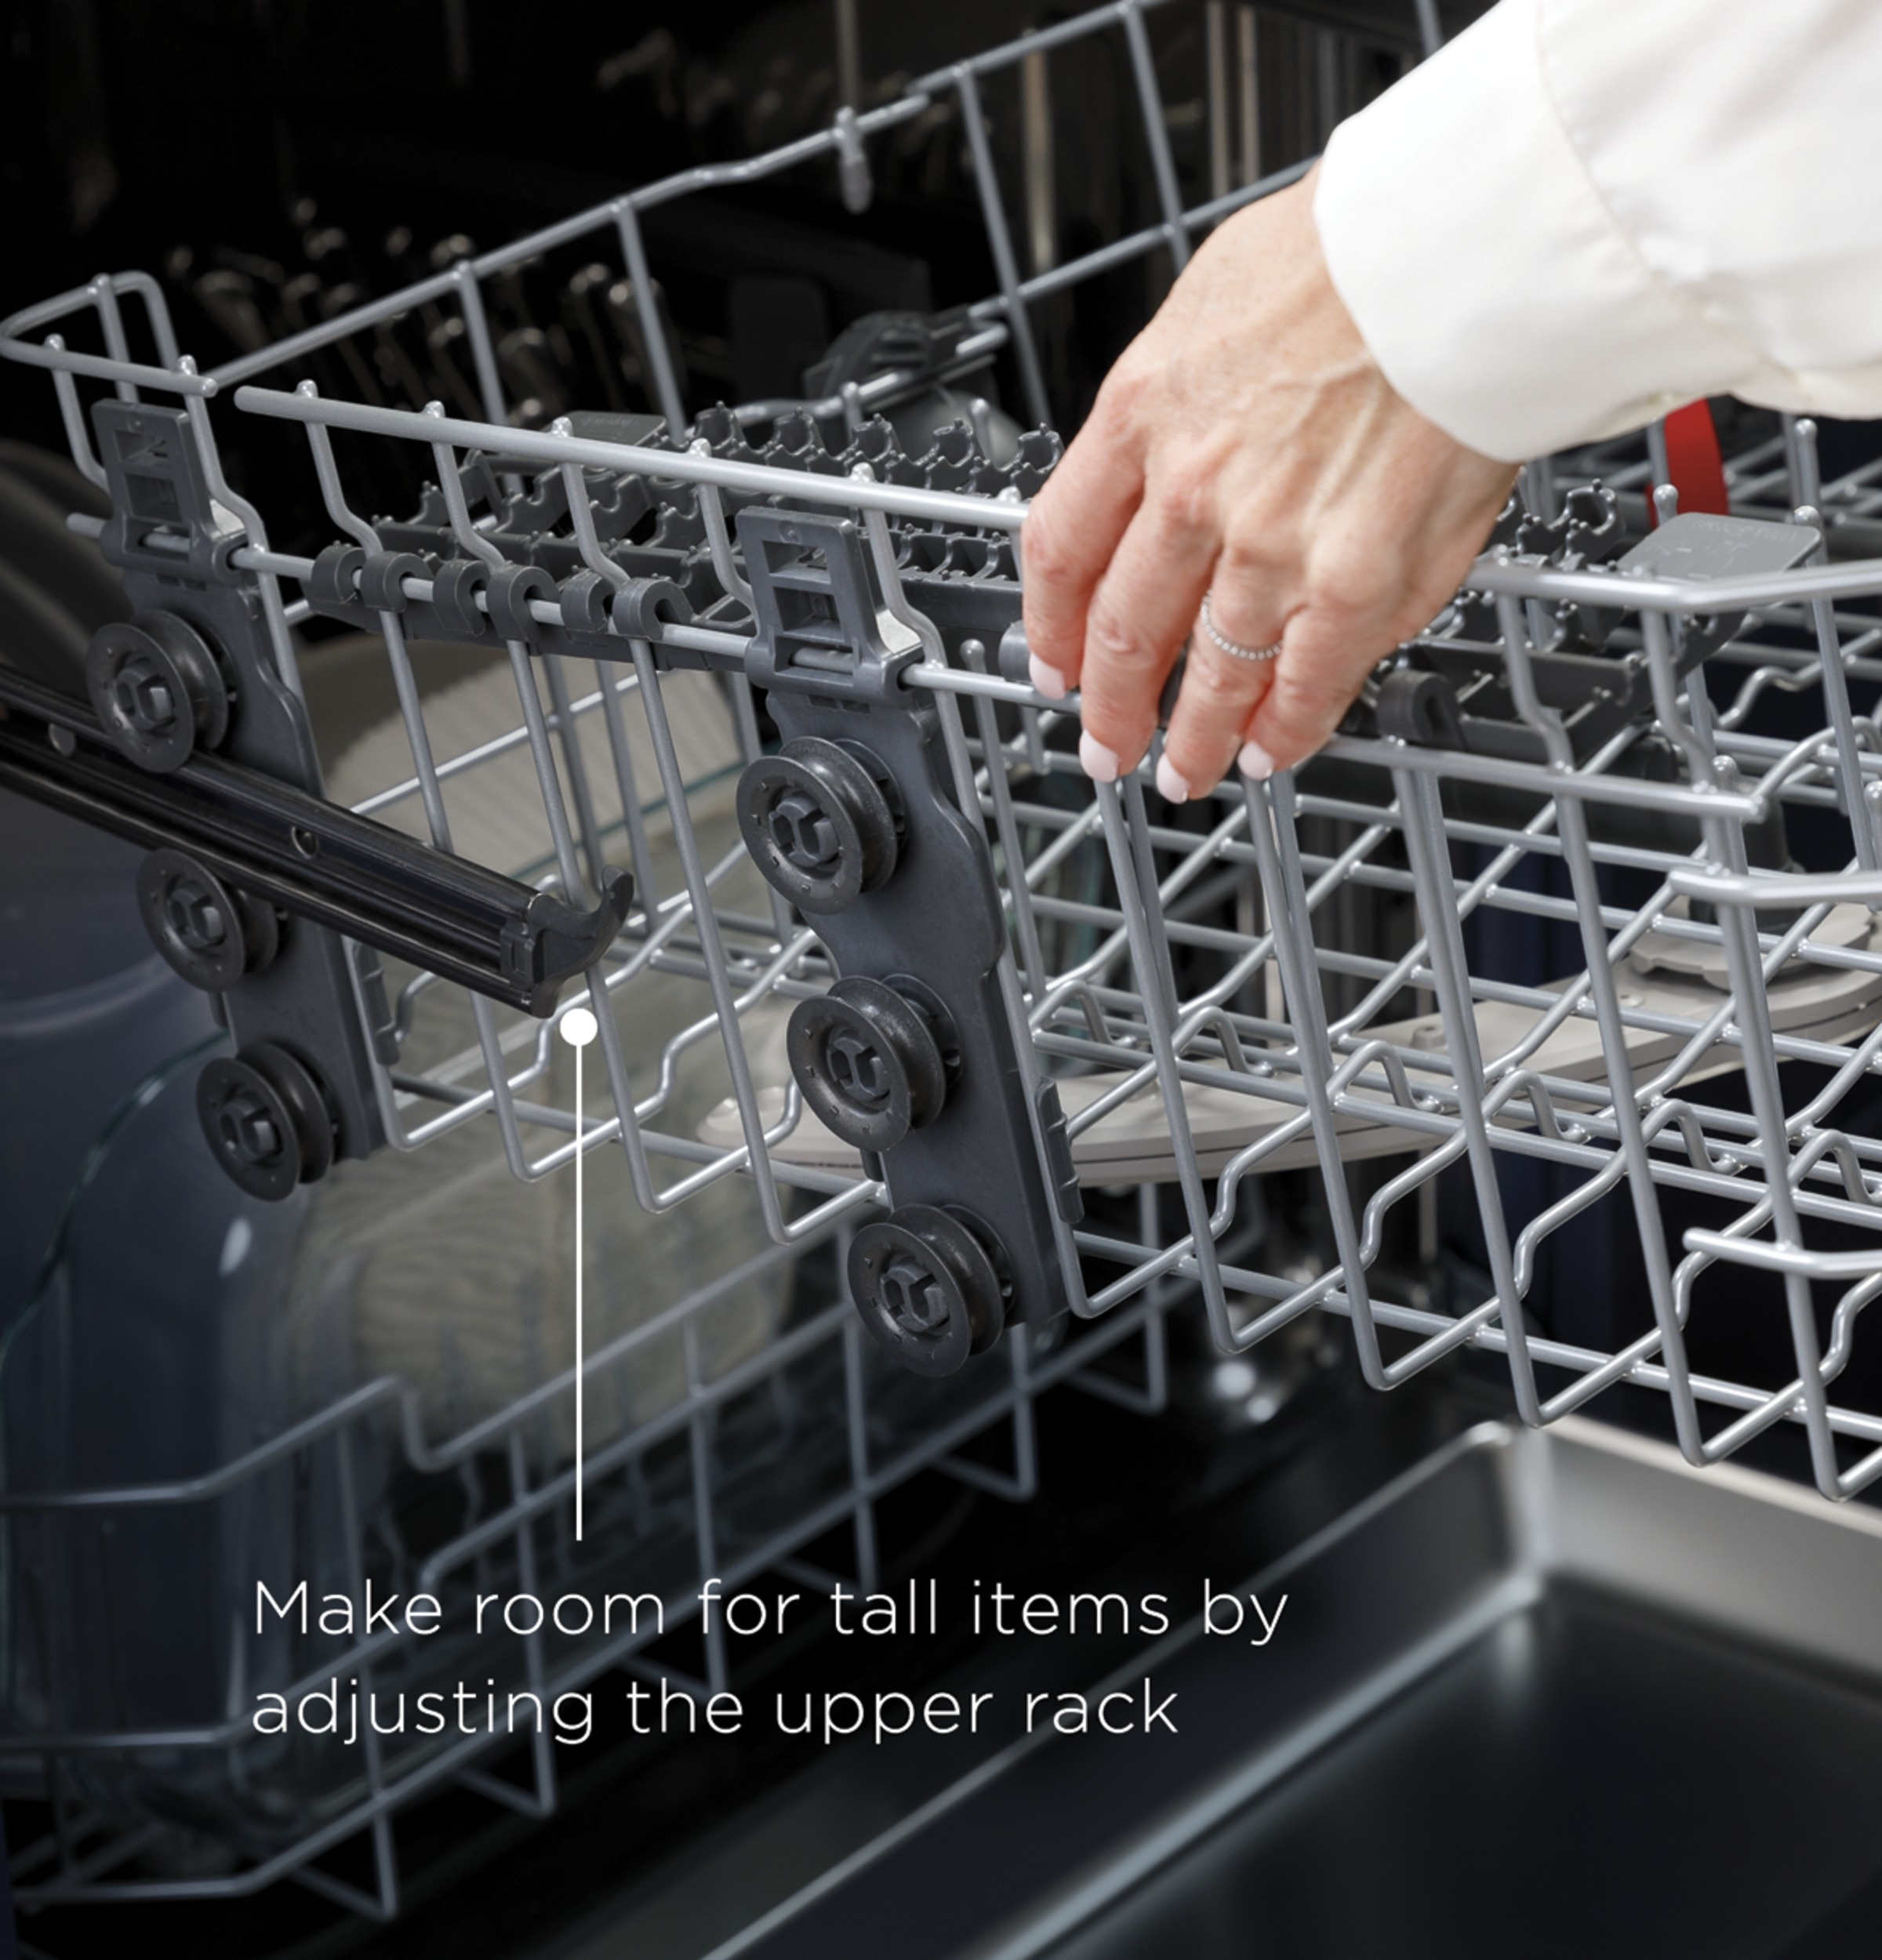 Model: GDT645SSNSS | GE GE® Top Control with Stainless Steel Interior Dishwasher with Sanitize Cycle & Dry Boost with Fan Assist